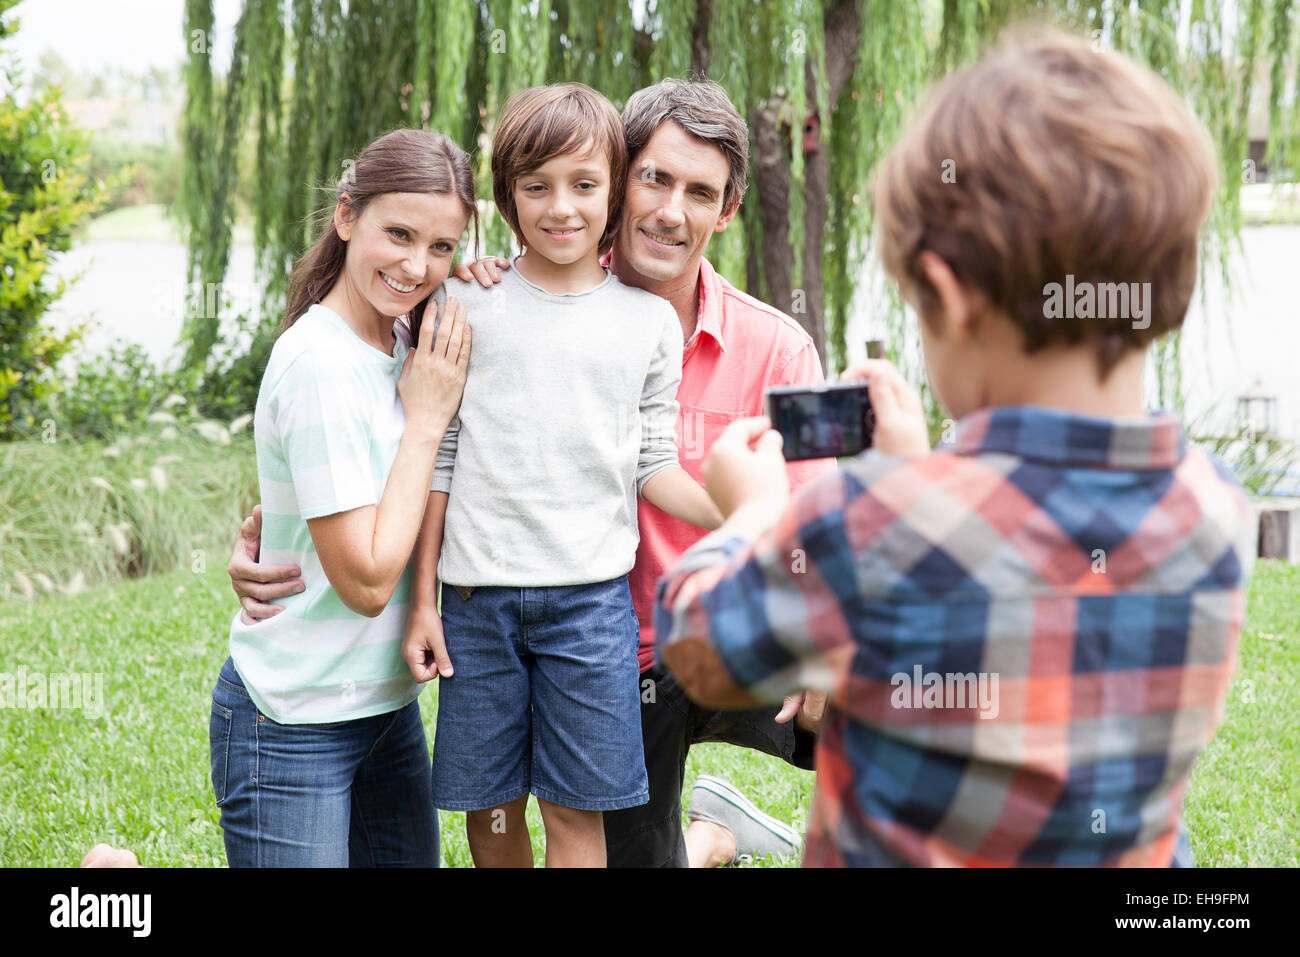 Boy photographing family - Stock Image